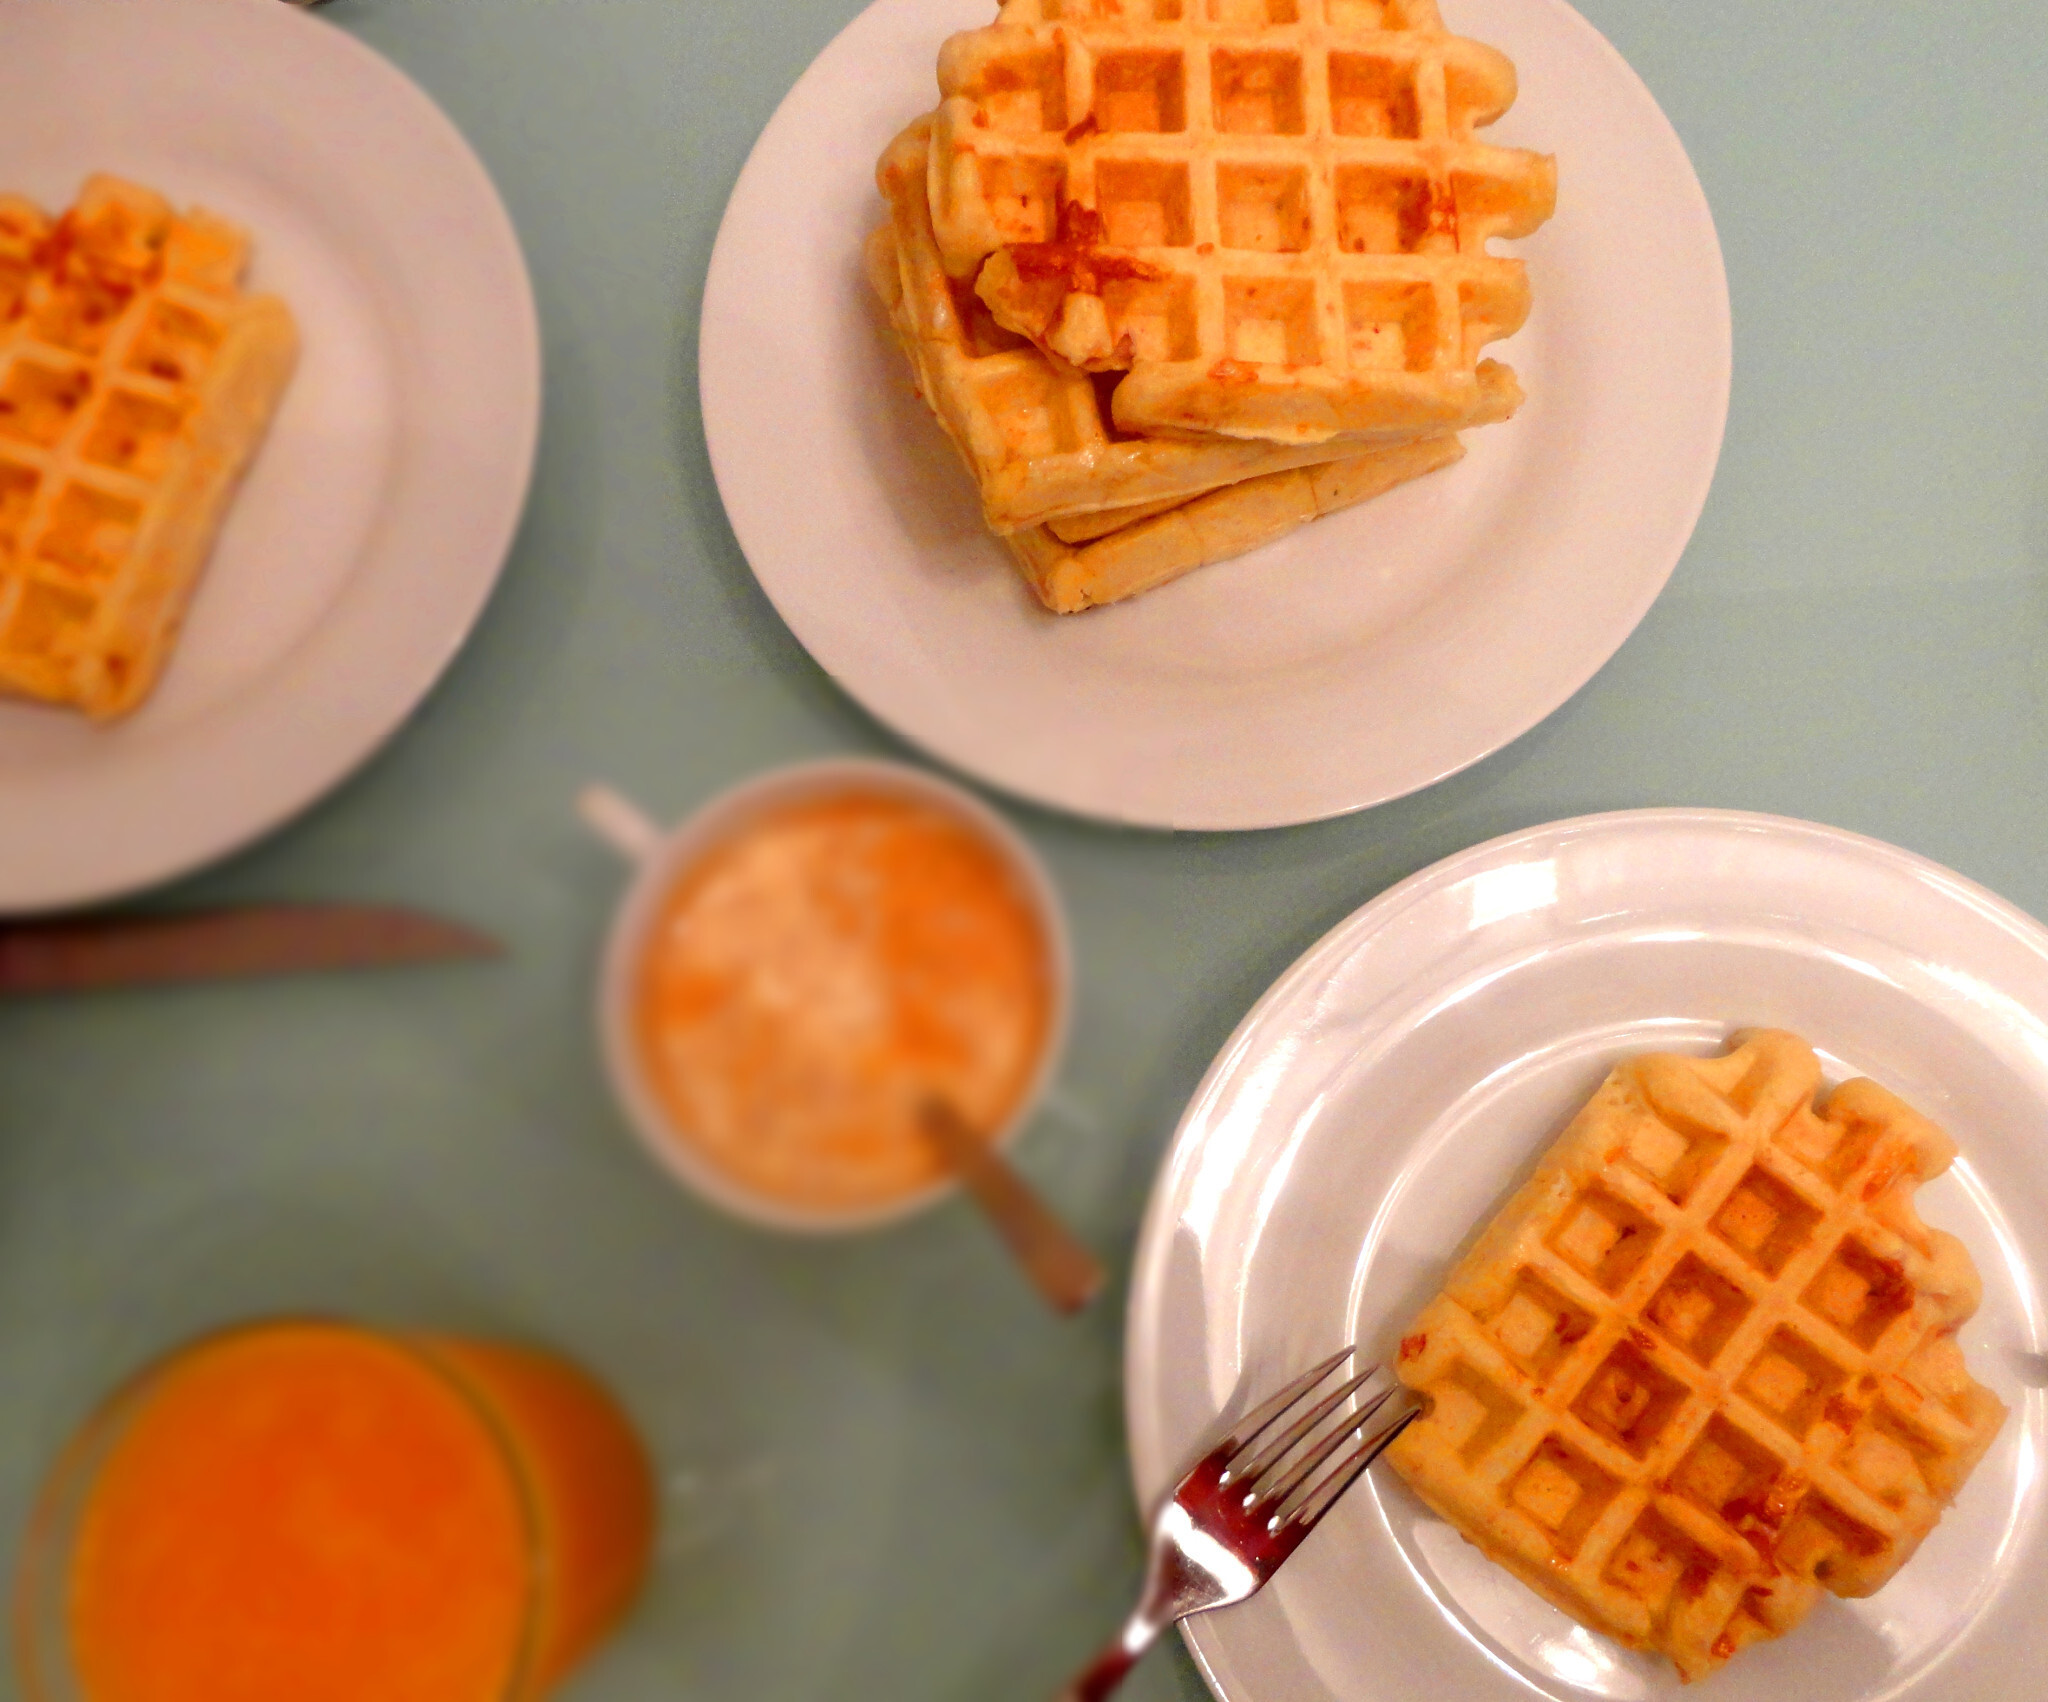 Bacon & Cheese Waffles (Gofres de Bacon y Queso)